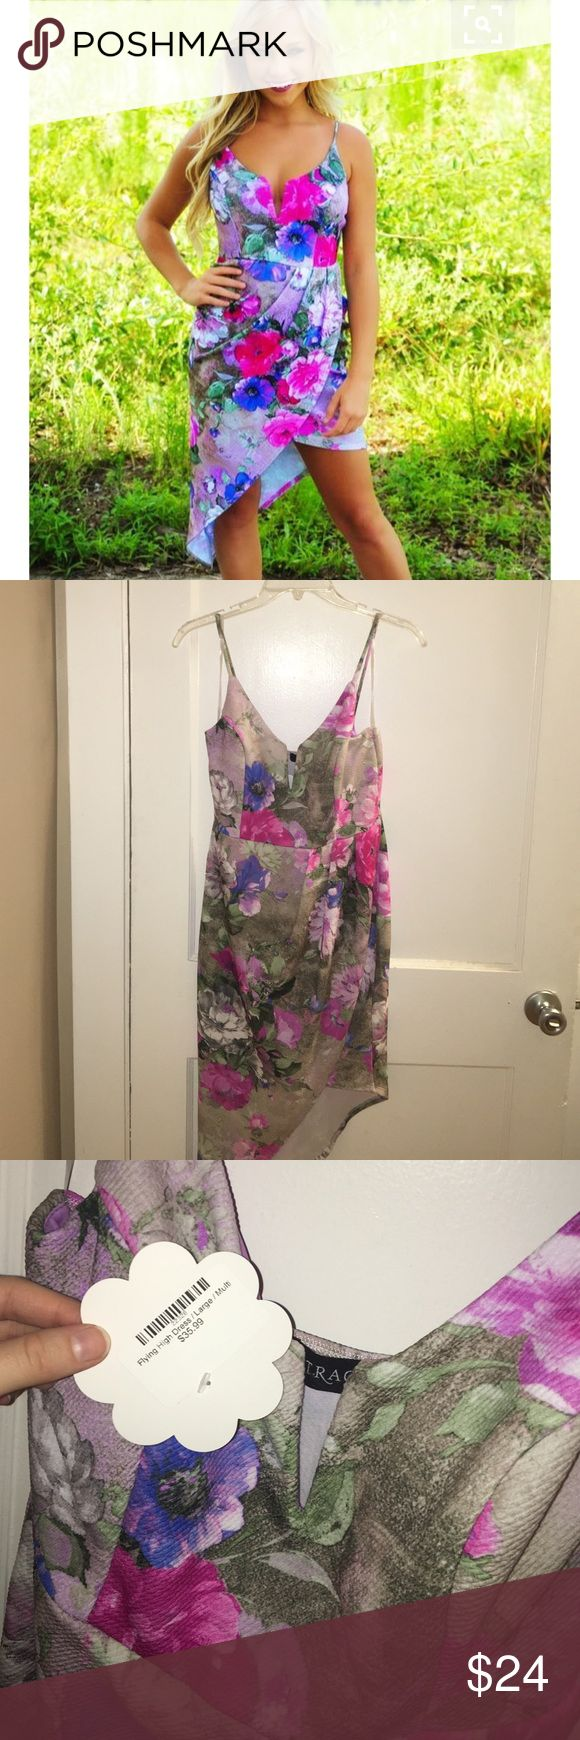 "Floral Asymmetrical Dress Brand new with tags! Never been worn! Originally purchased online from ShopHope's. In perfect condition. The material does stretch. Straps are not adjustable. It has built in padded cups. It runs true to size and is supposed to be a more ""fitted"" dress. Shop Hope's Dresses Asymmetrical"